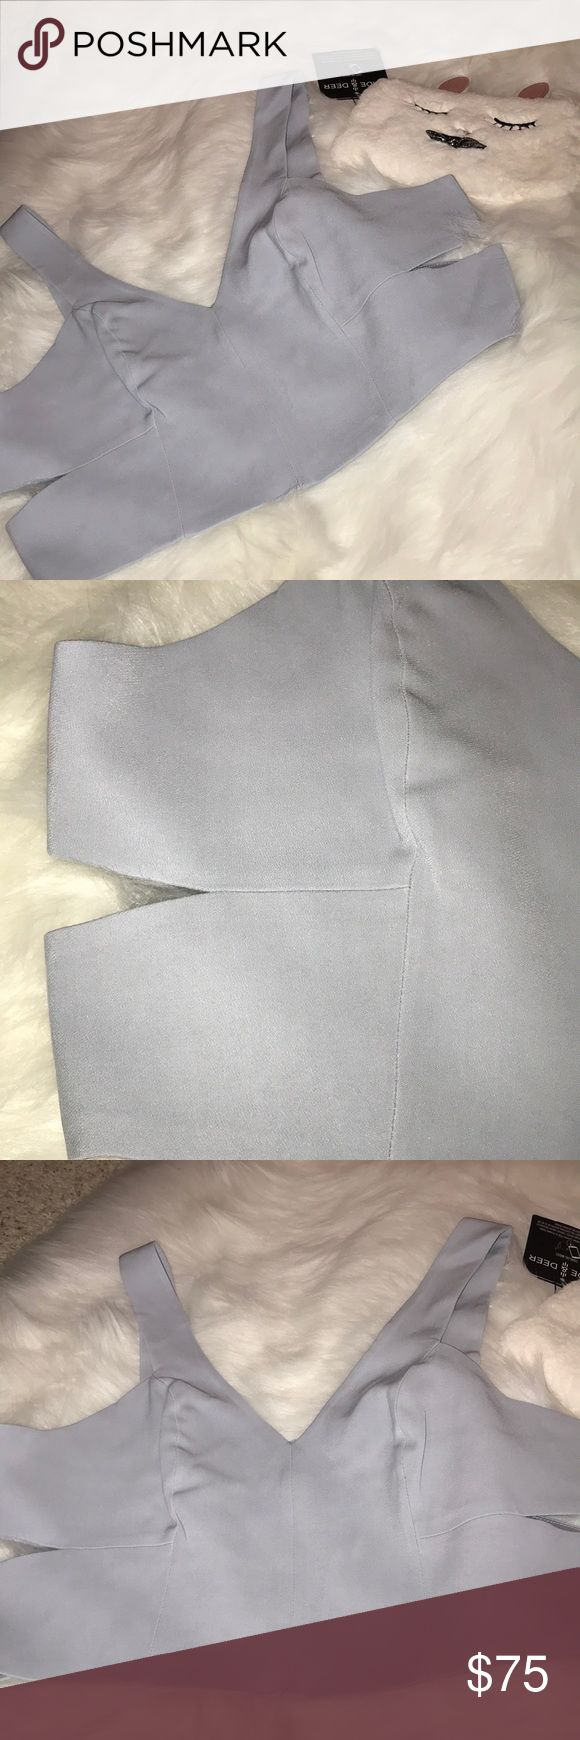 Dolce Vita crop top Stunning dolce vita crop top and silver gray, size large, new with tags. Bust is about 36 inches while waist is about 34. Measurements are approximate Dolce Vita Tops Crop Tops